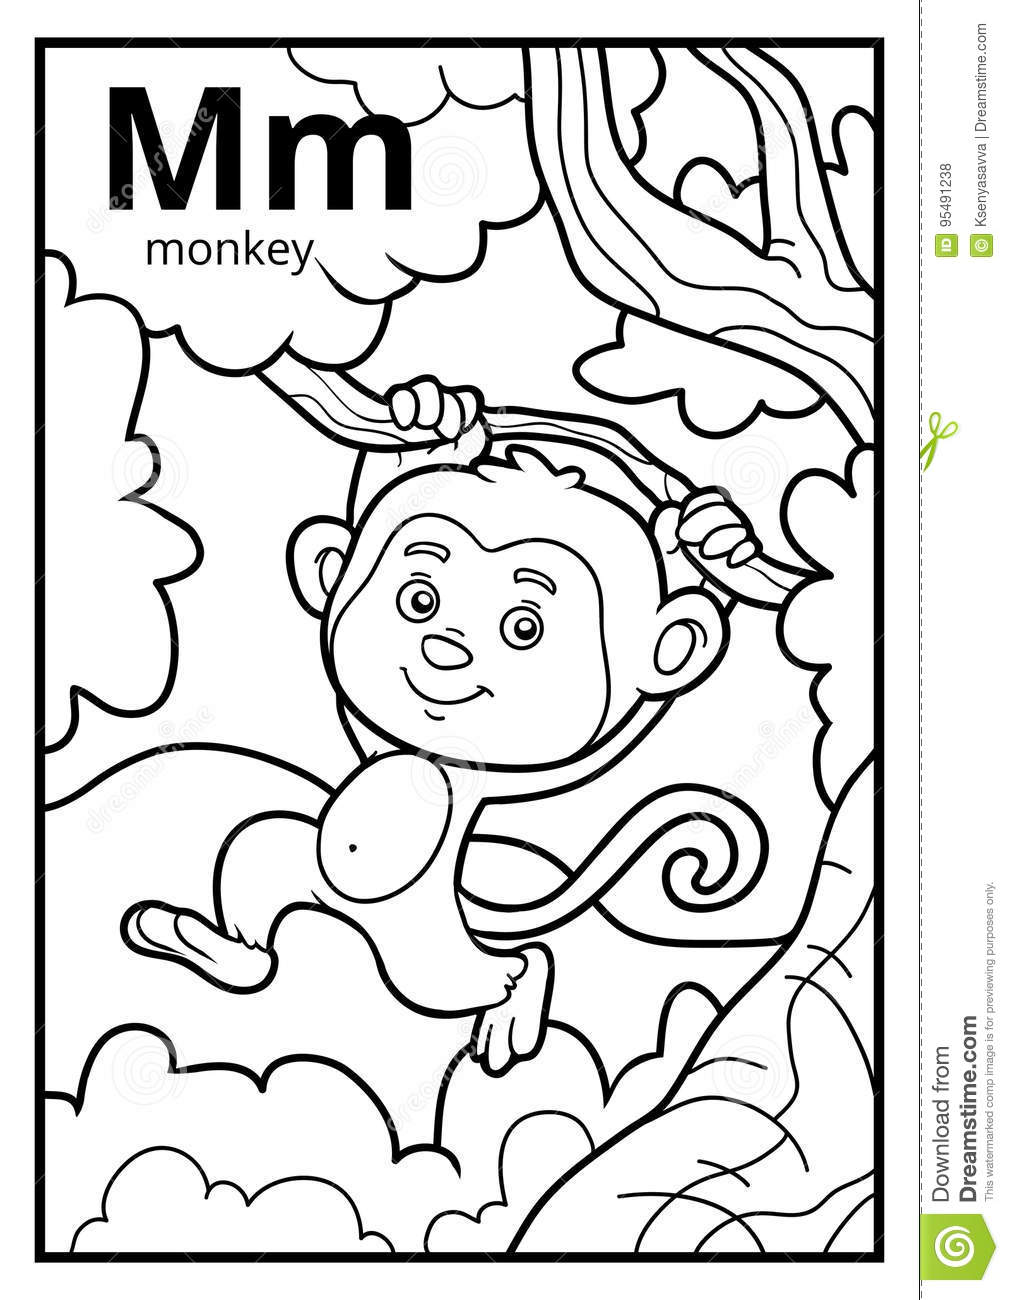 Coloring Book, Colorless Alphabet. Letter M, Monkey Stock Vector ...